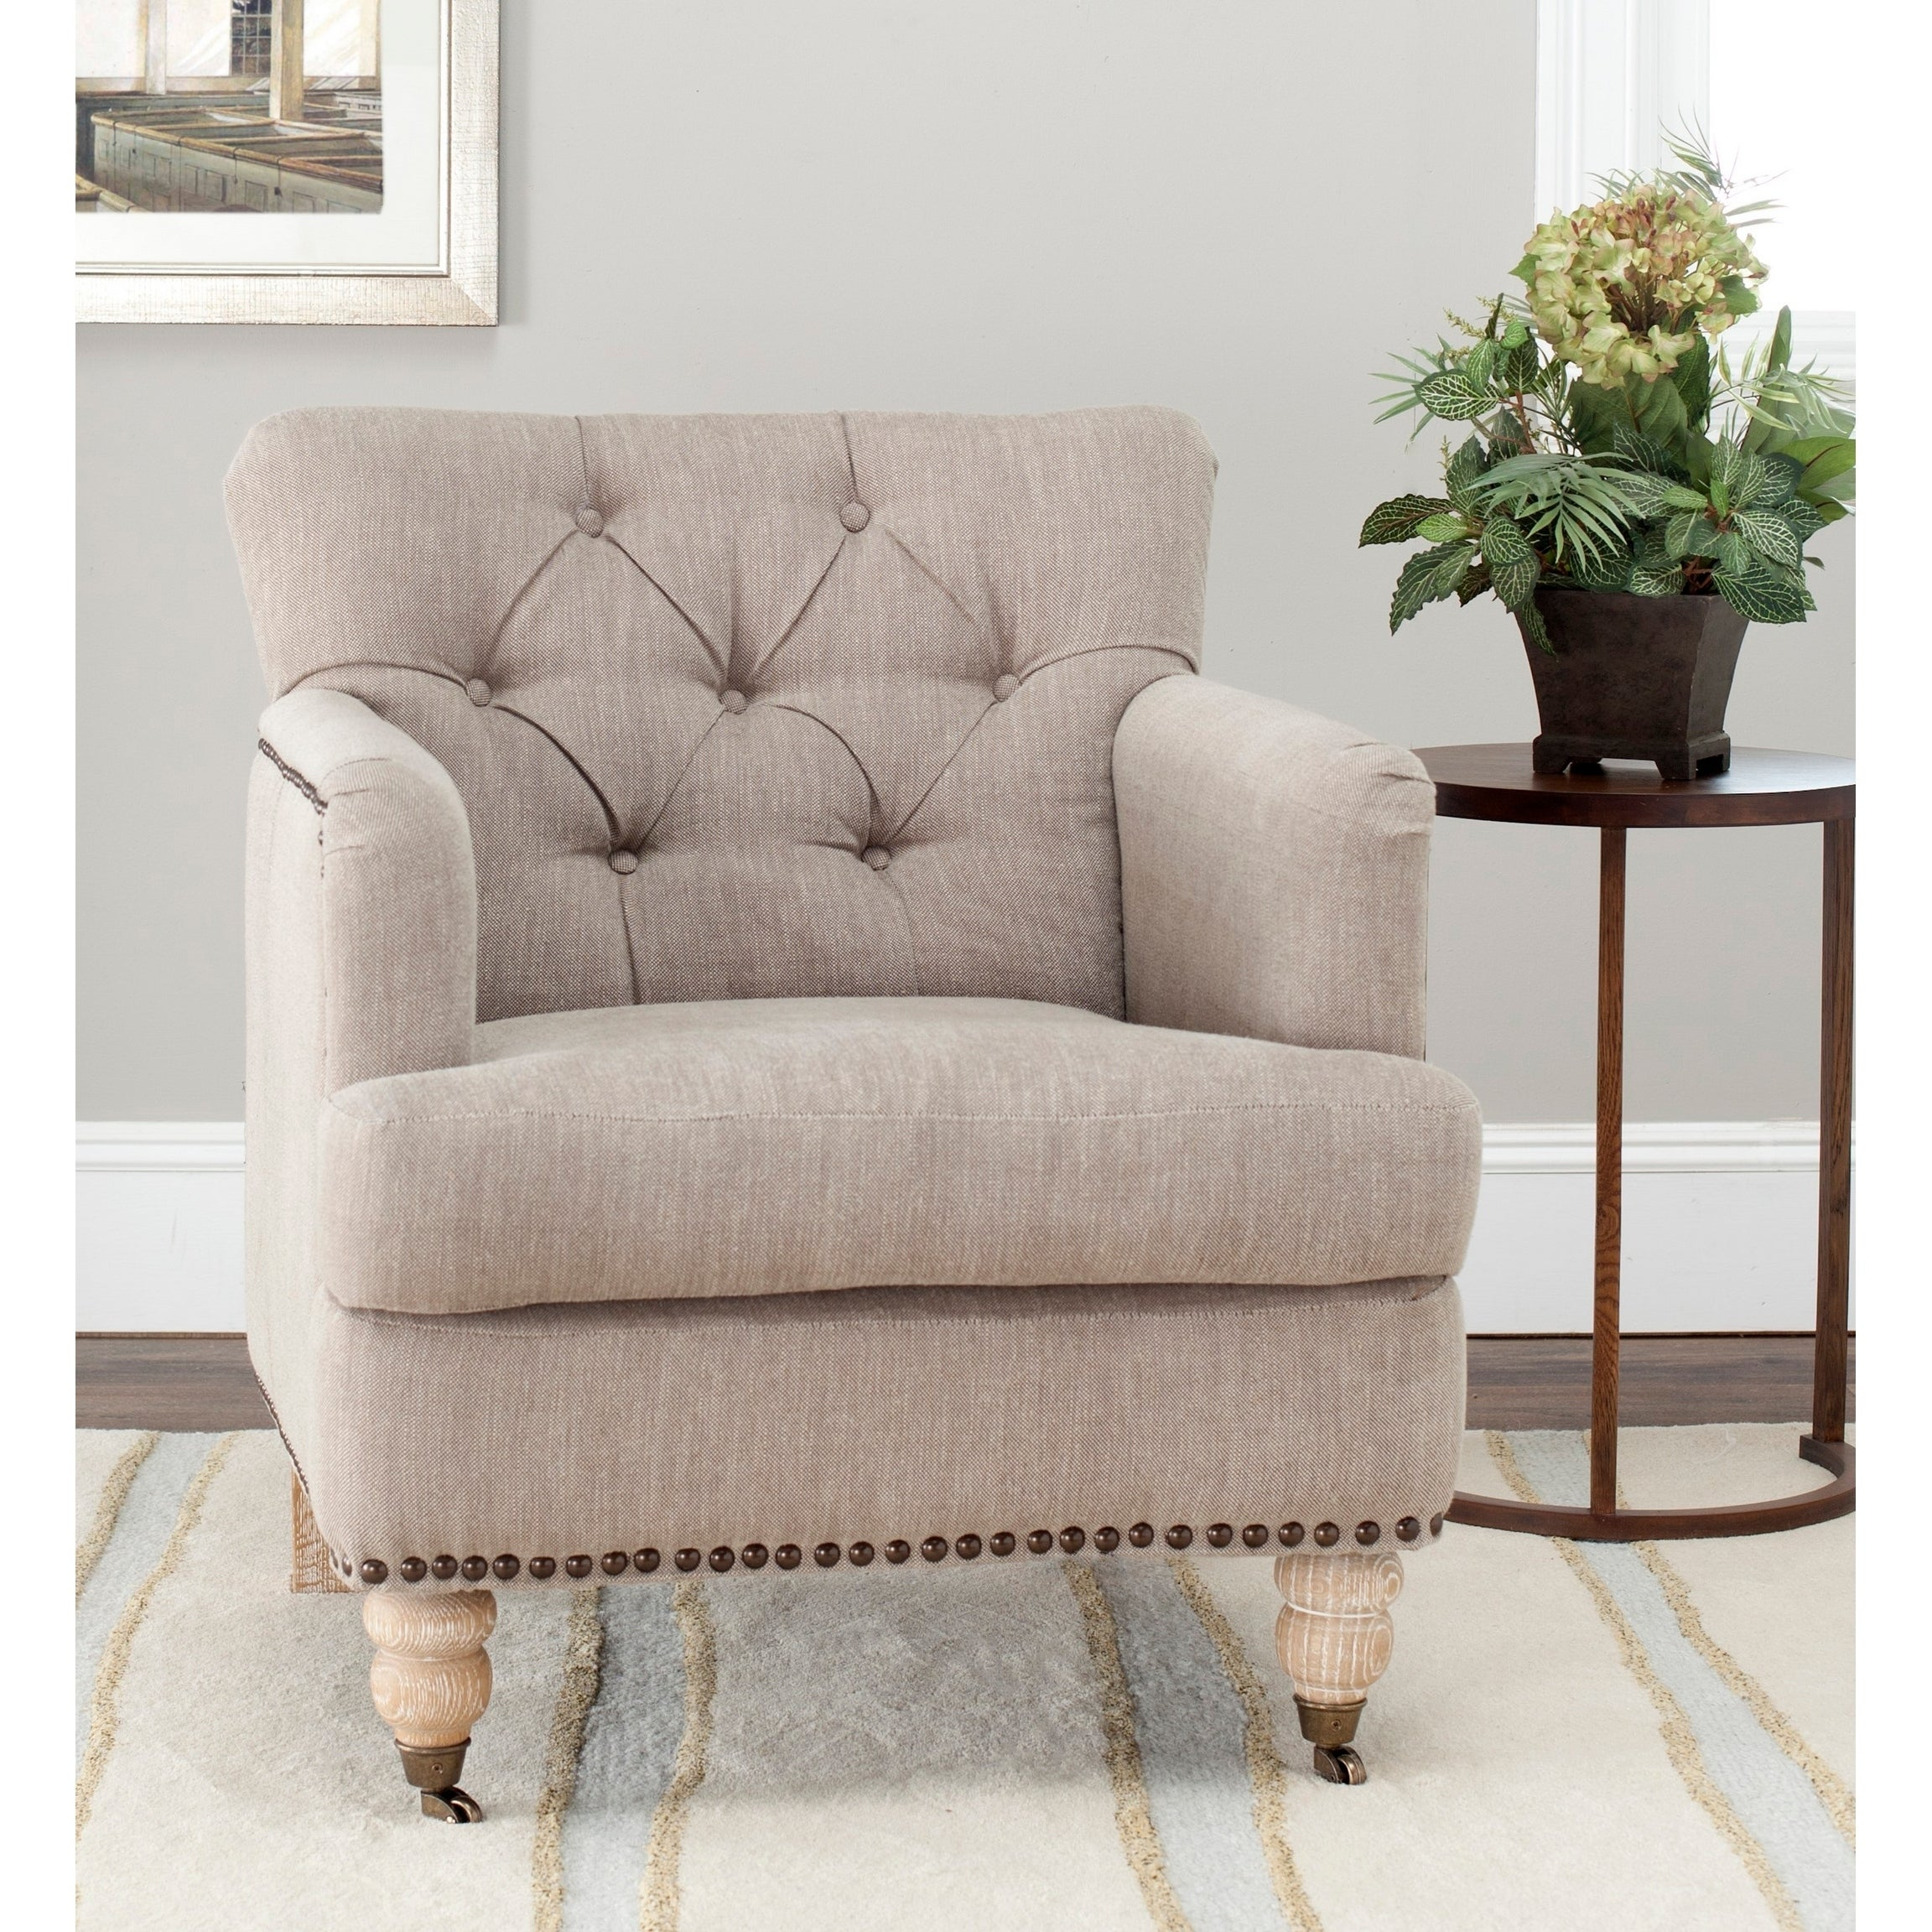 buy club chairs living room chairs clearance liquidation online rh overstock com buy living room chairs online cheap living room chairs